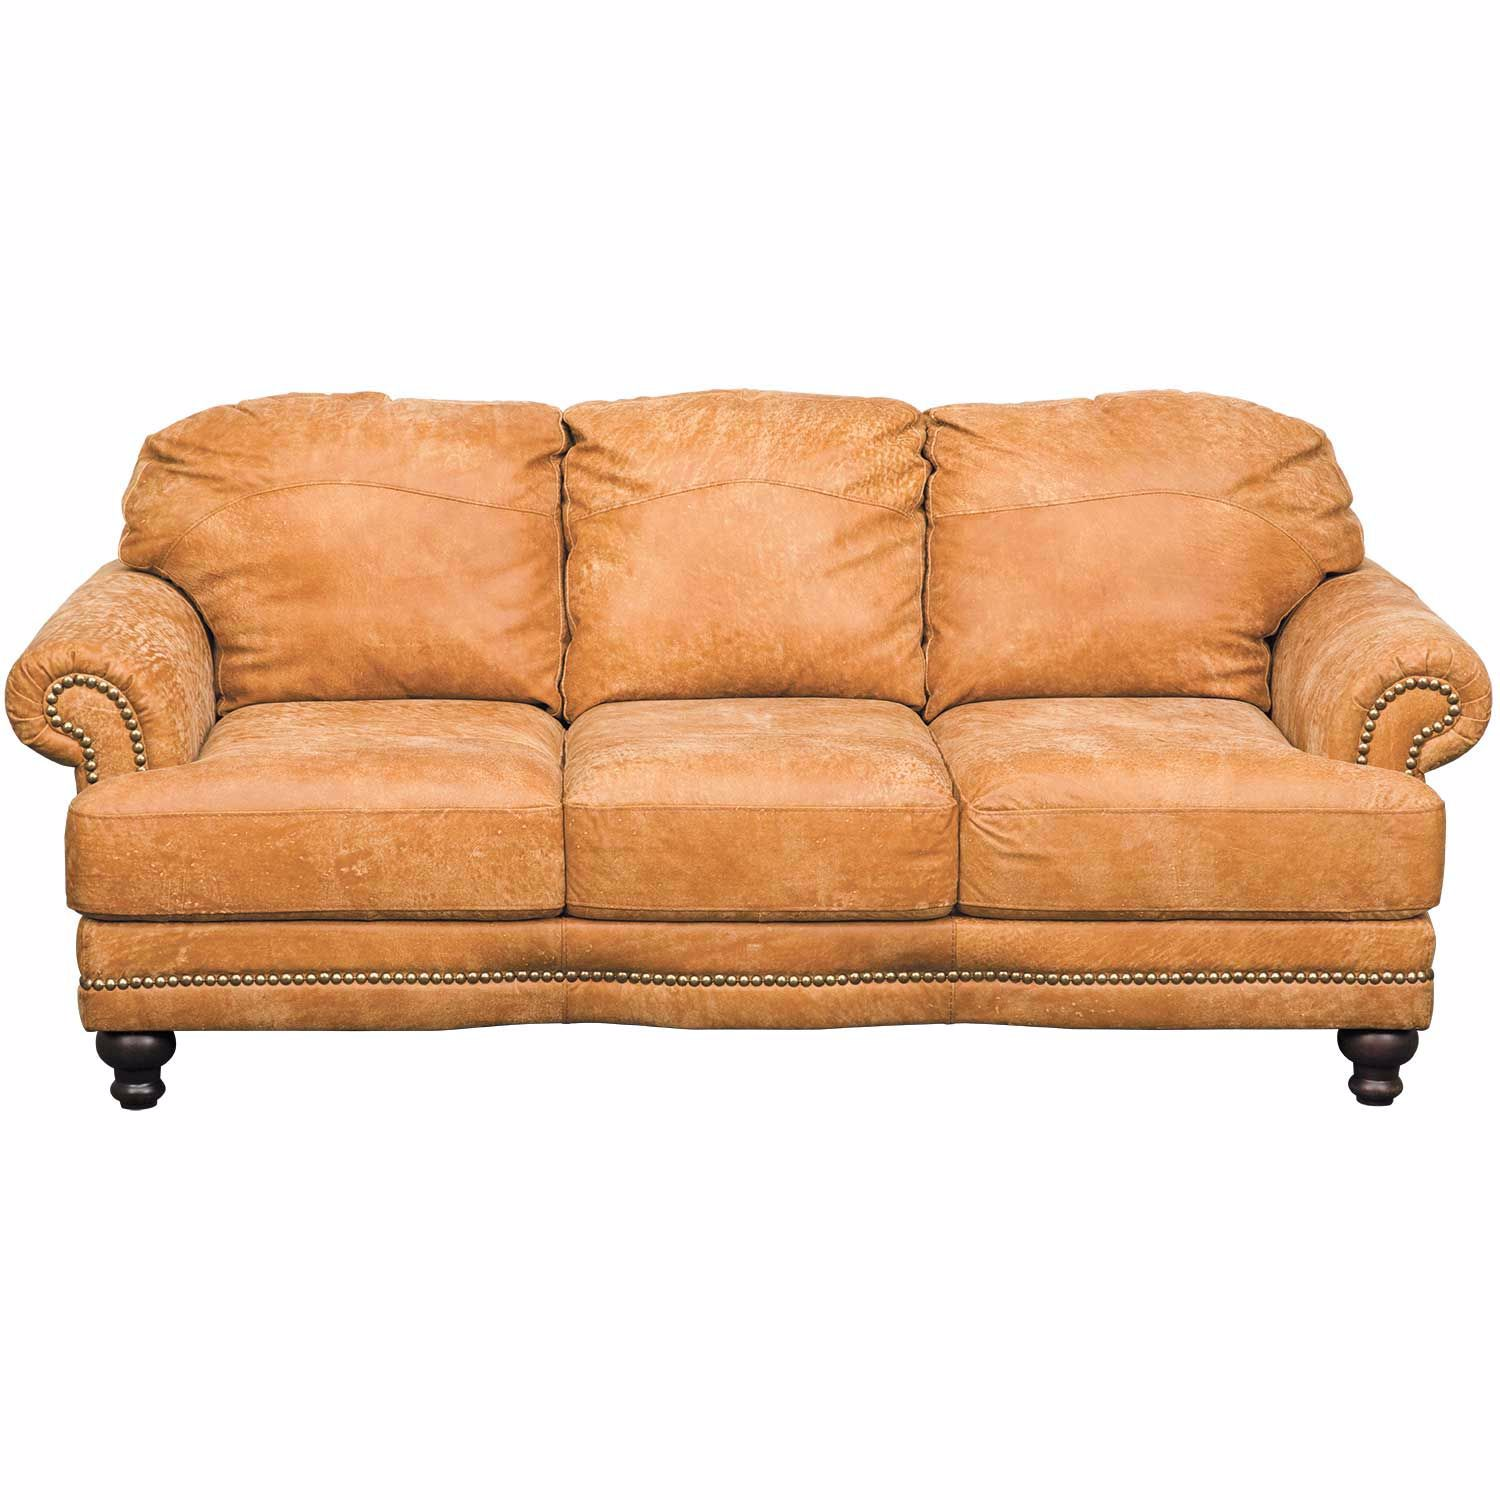 Austin Italian All Leather Sofa | 4577S OUTBACK RANCH 42000 | Soft ...